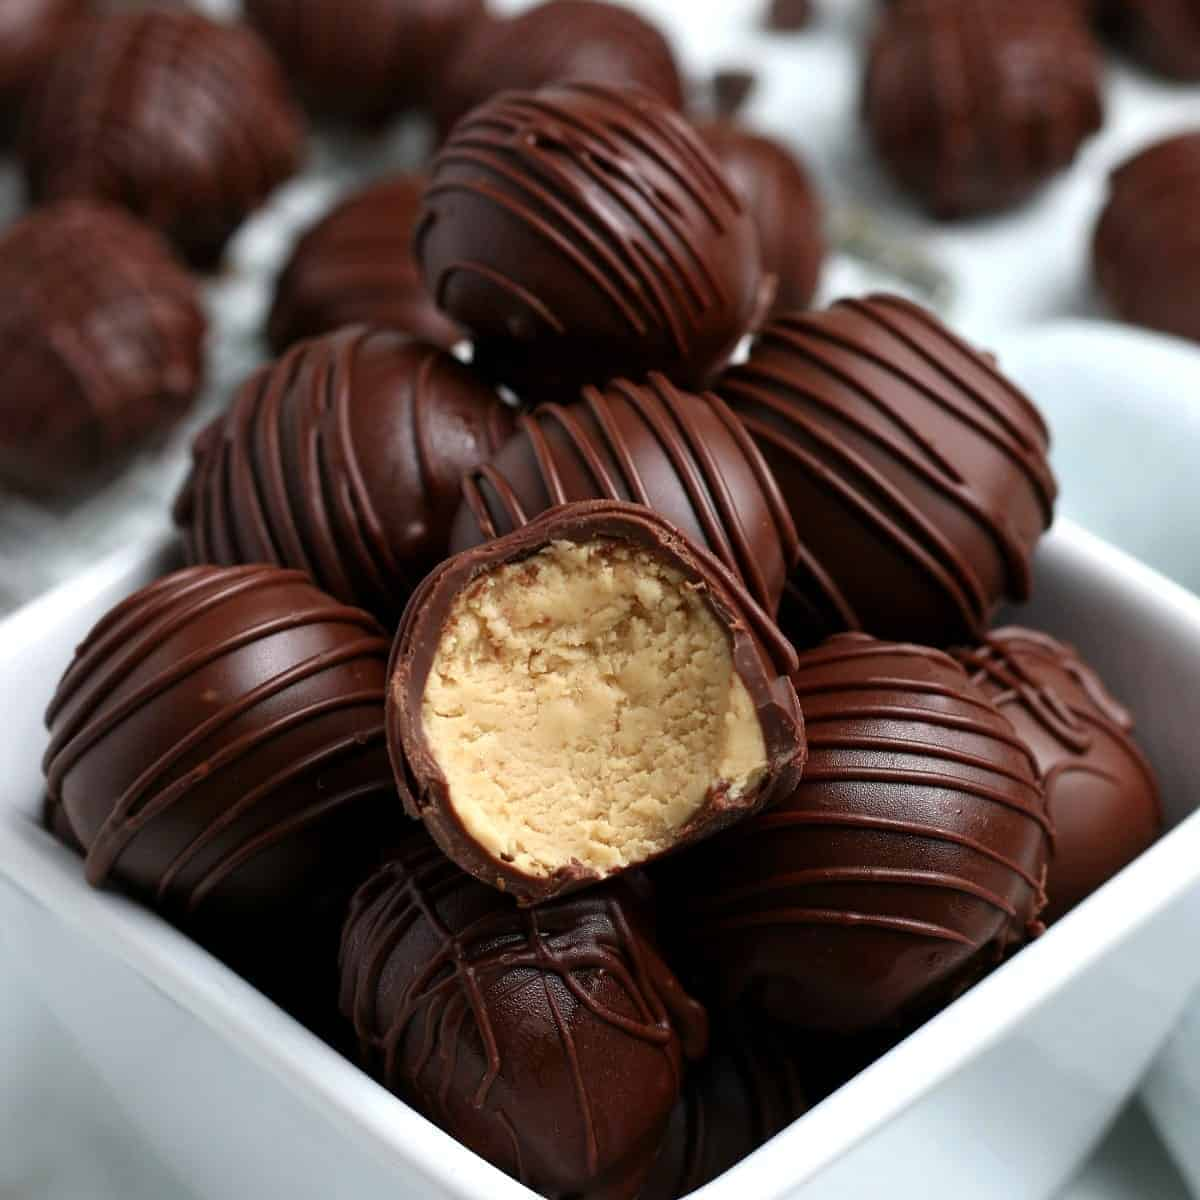 A pile of chocolate covered peanut butter truffles in a white bowl.